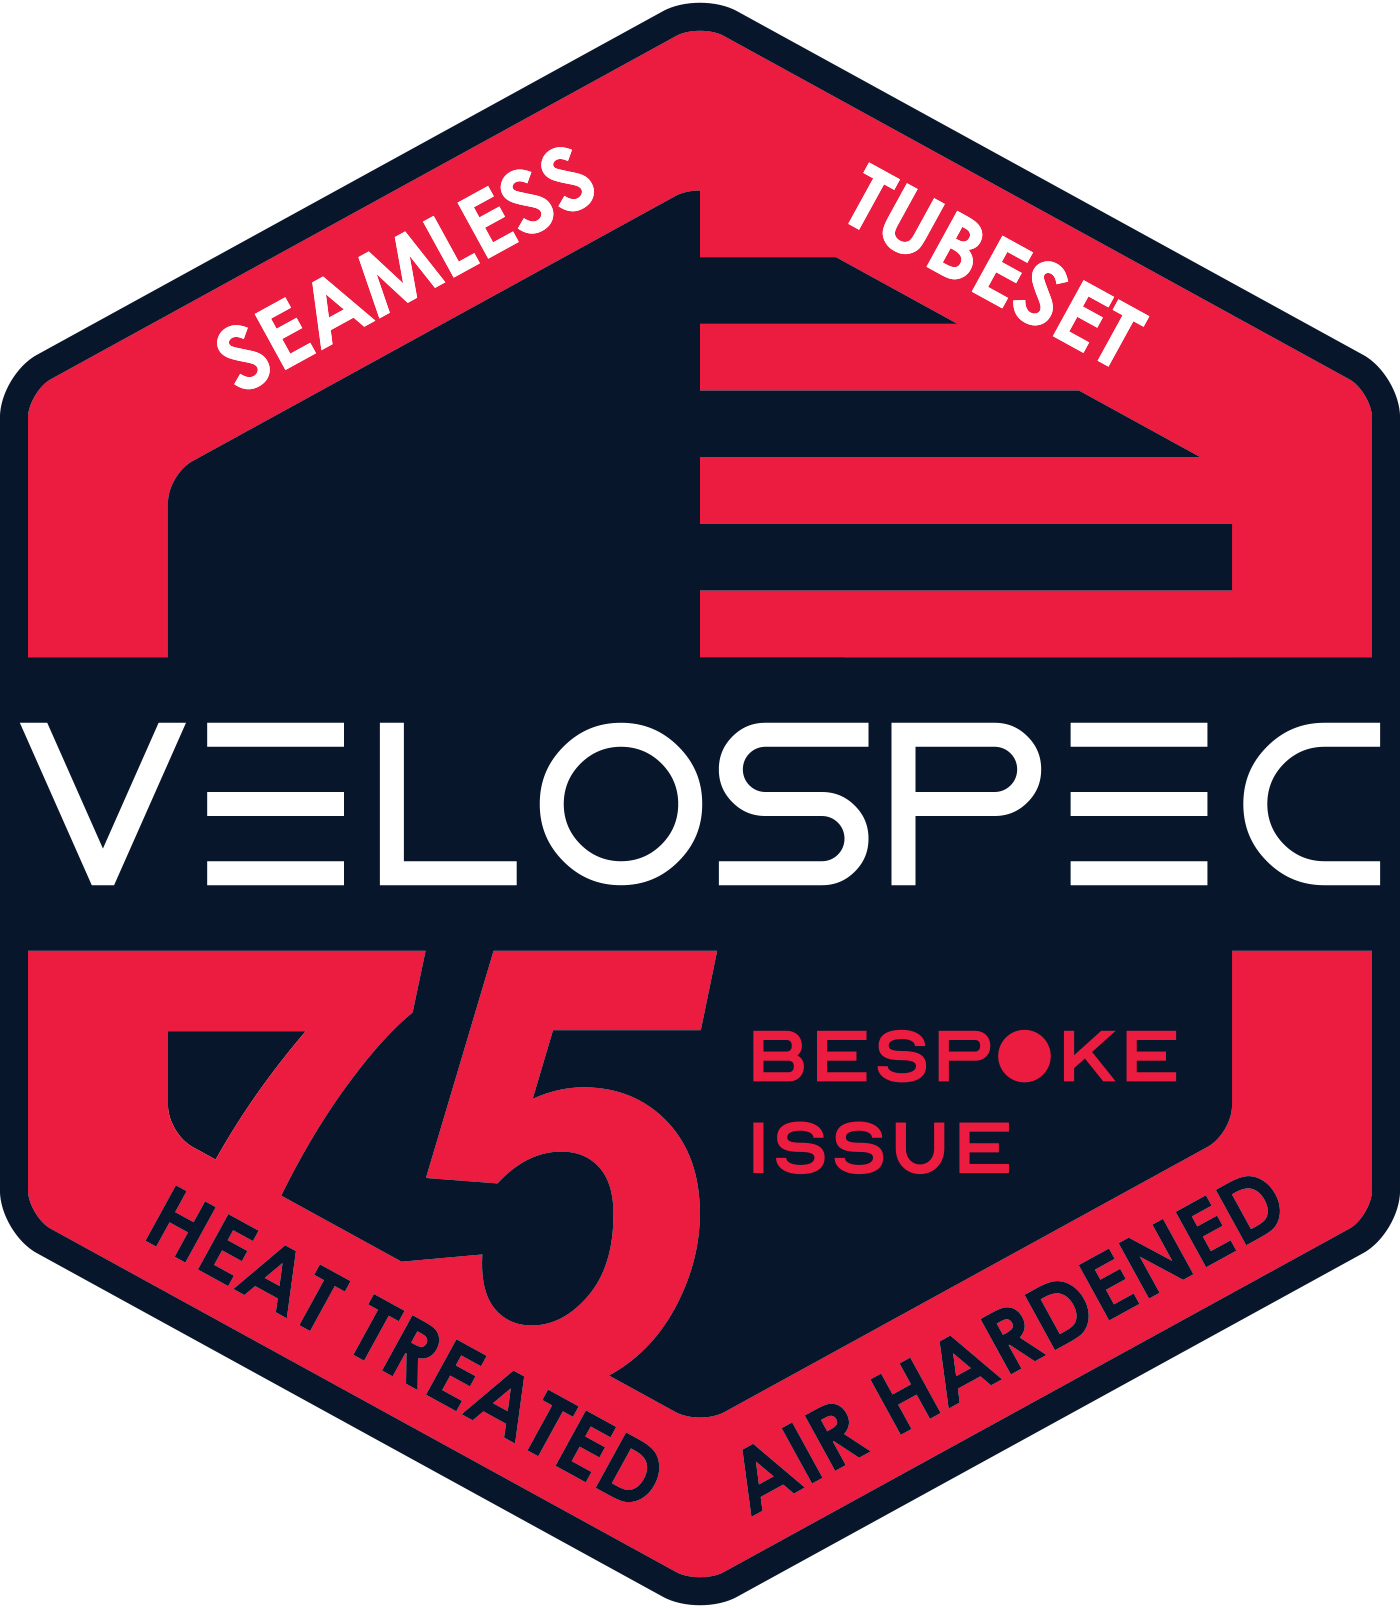 VELOSPEC BADGE 2019.jpg